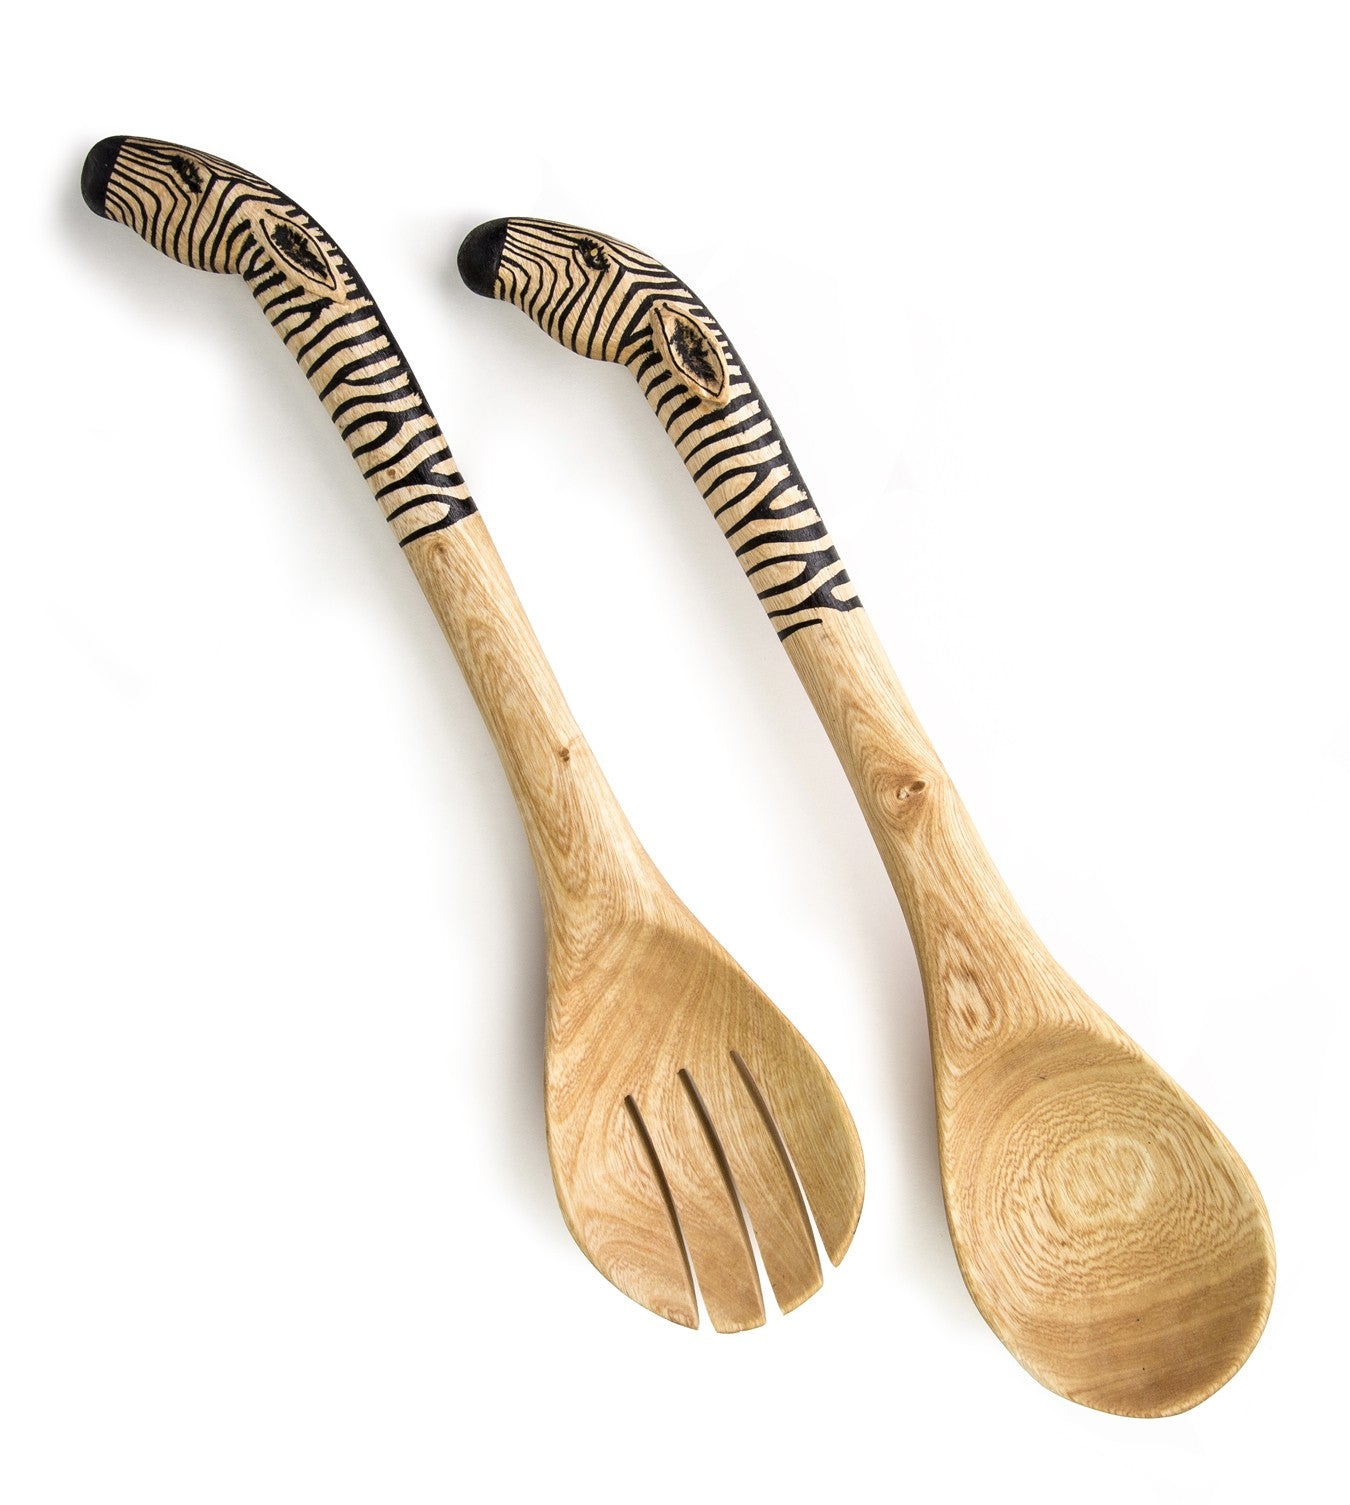 Hand-Carved Zebra Salad Spoon